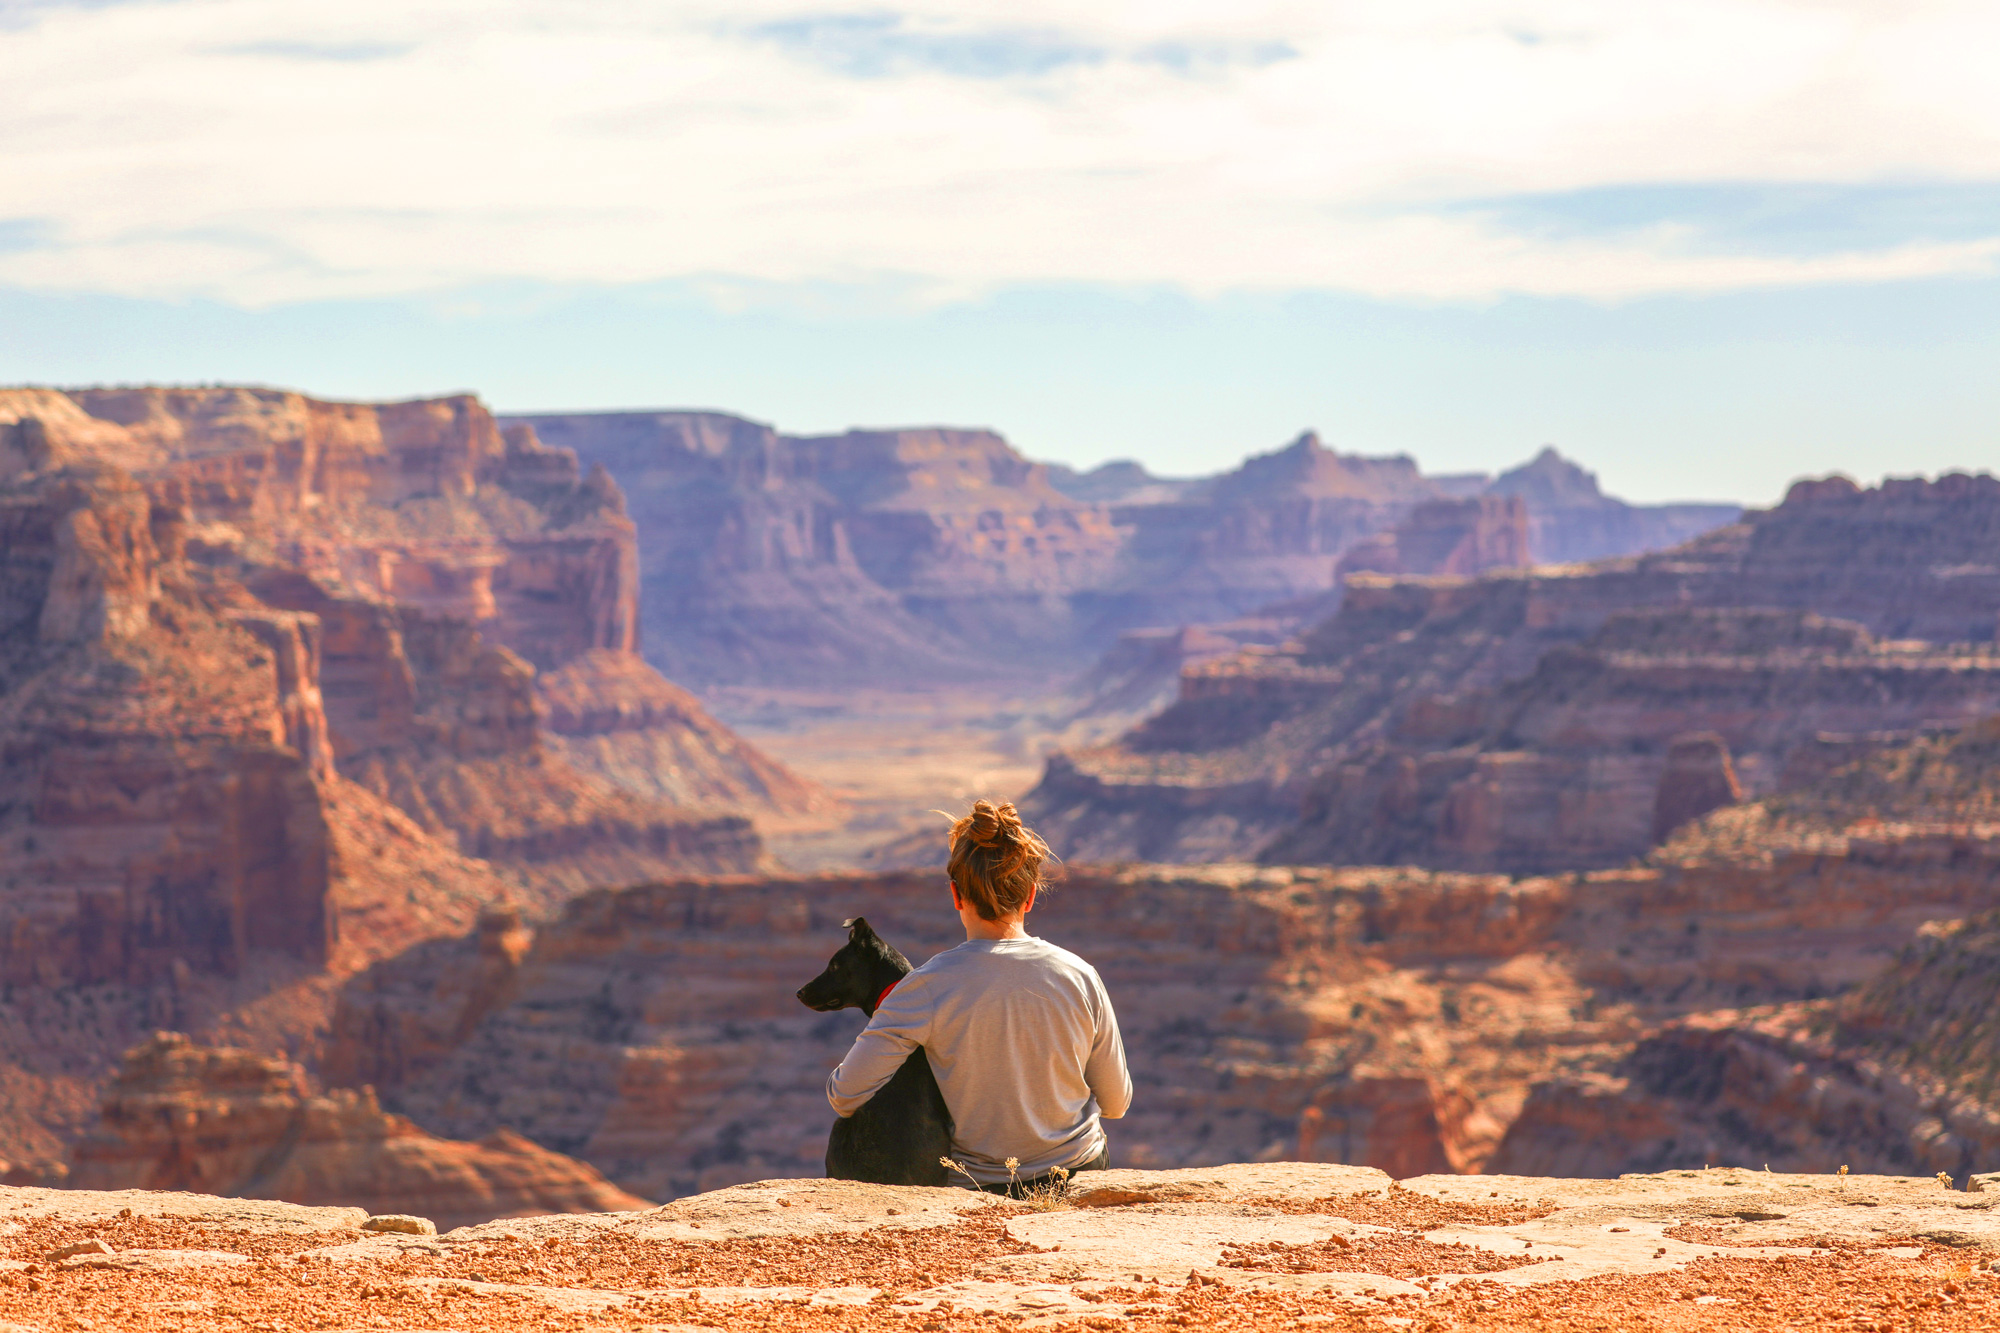 patrick hendry dog adventure in little grand canyon